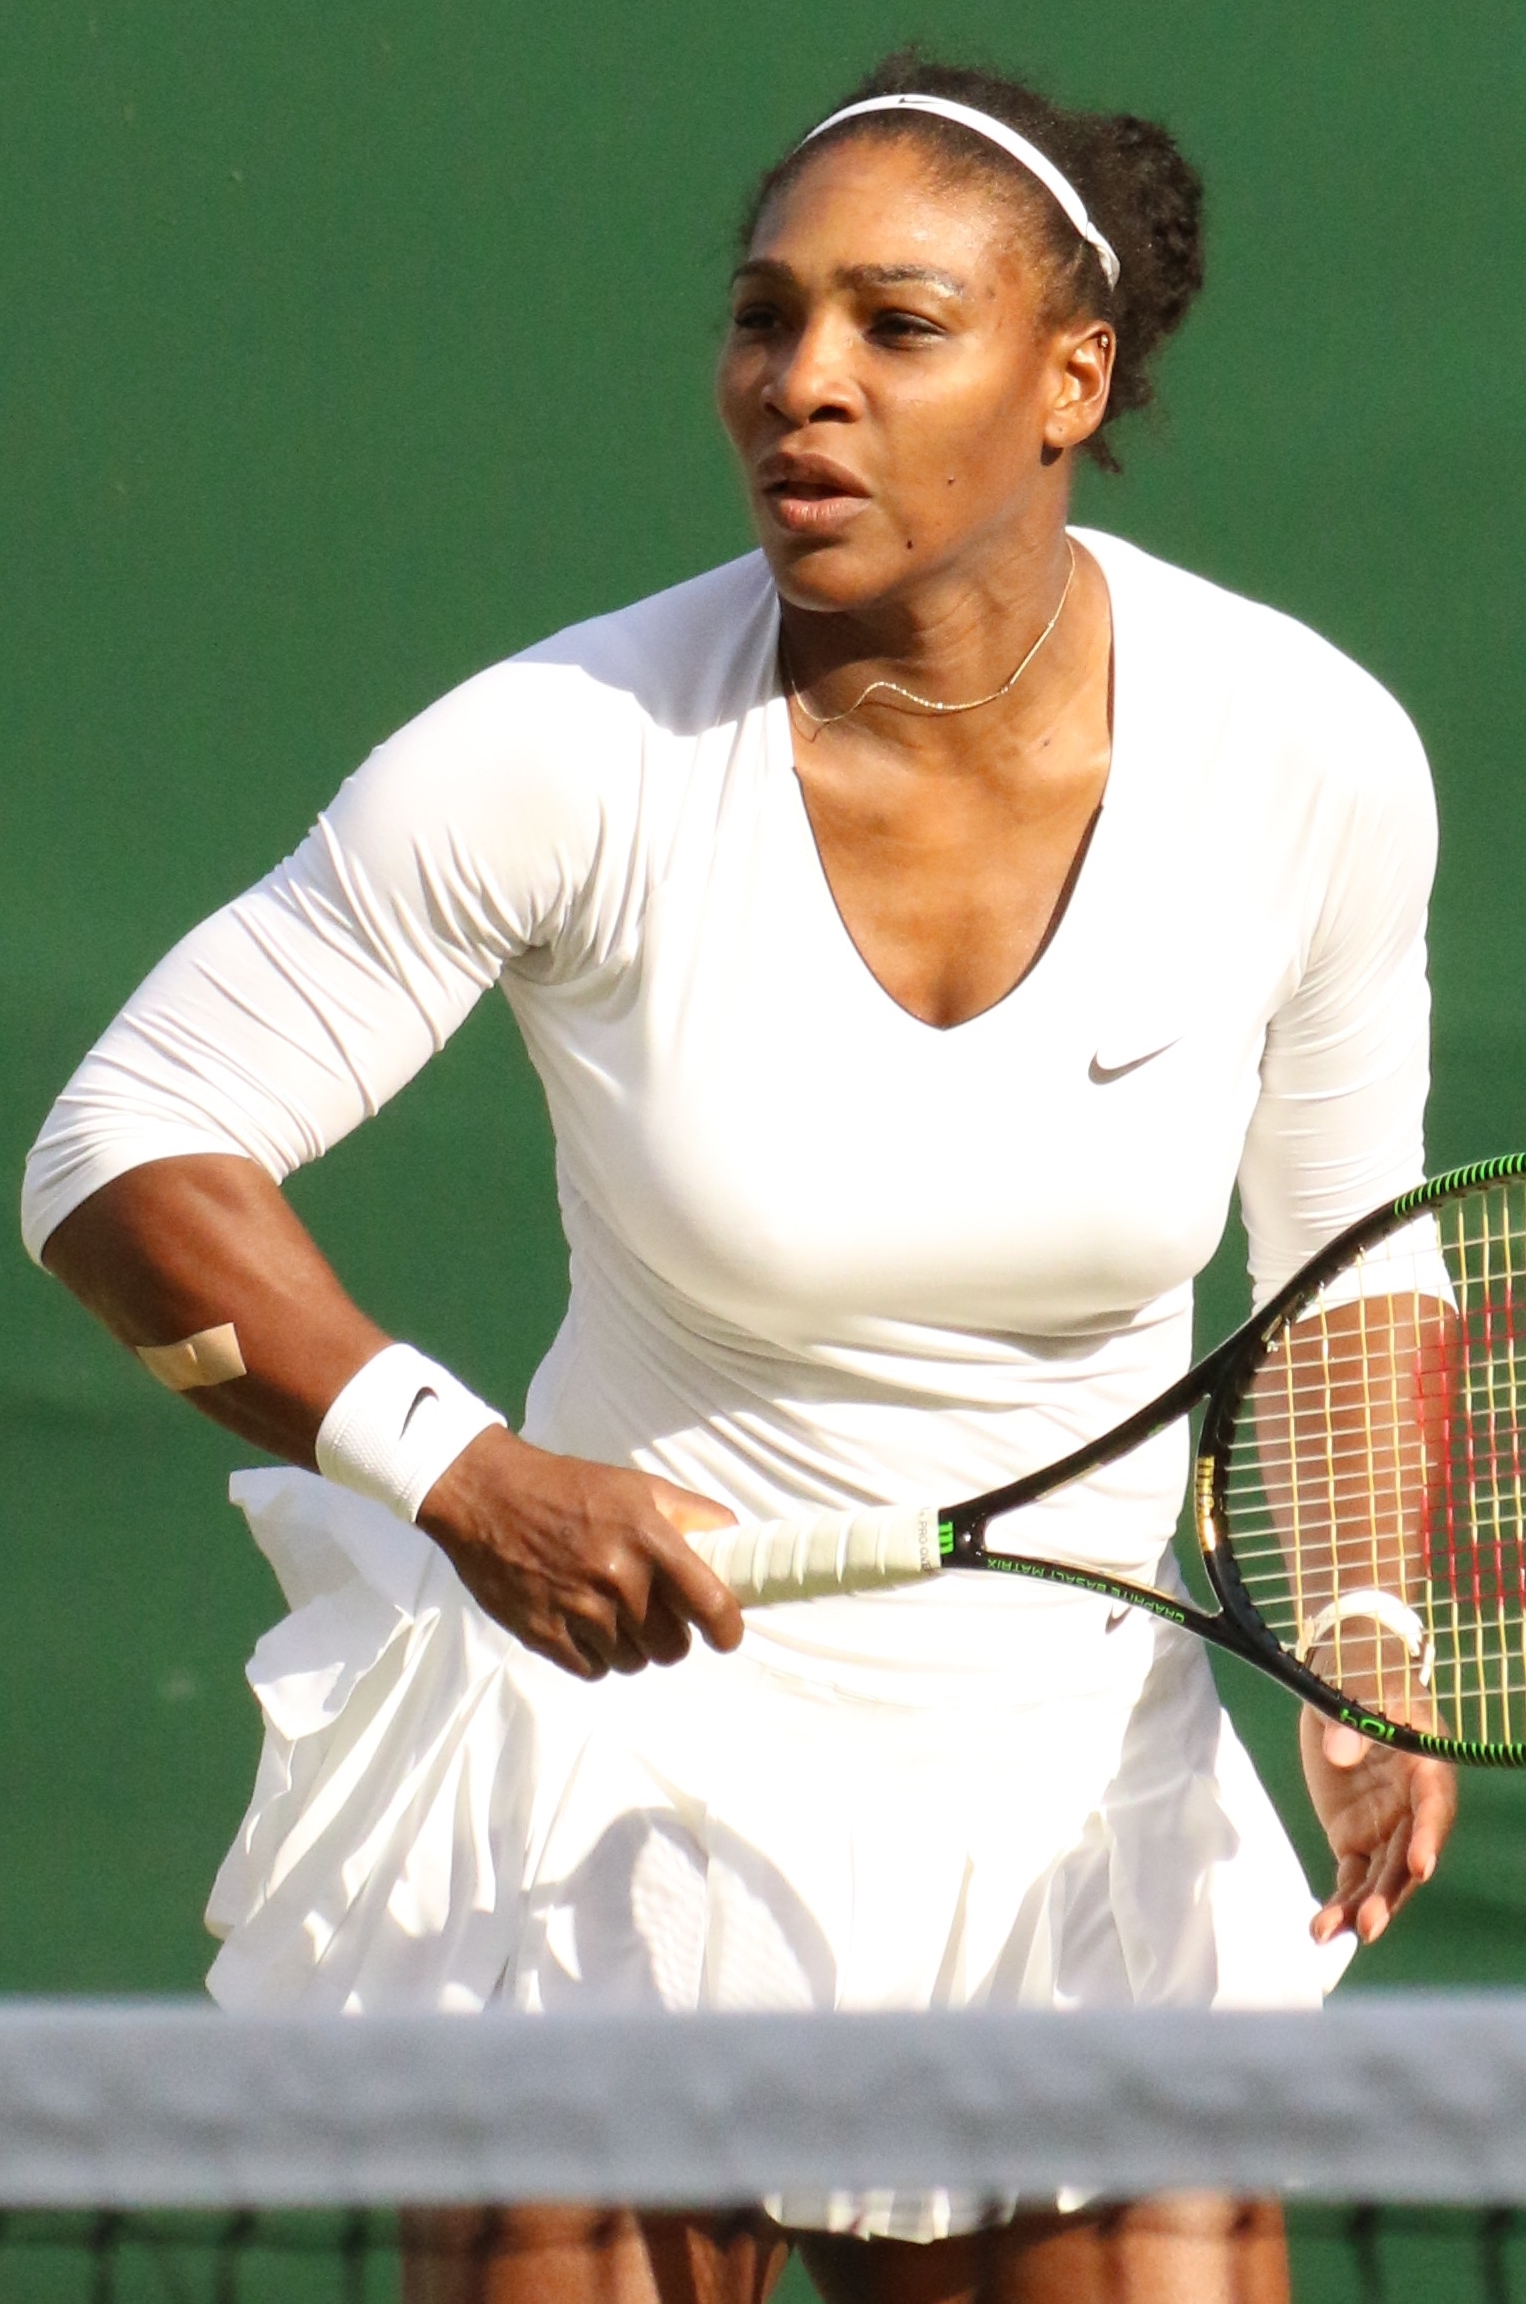 UPDATE 2-Tennis-Wait goes on for Williams as inspired Halep wins Wimbledon